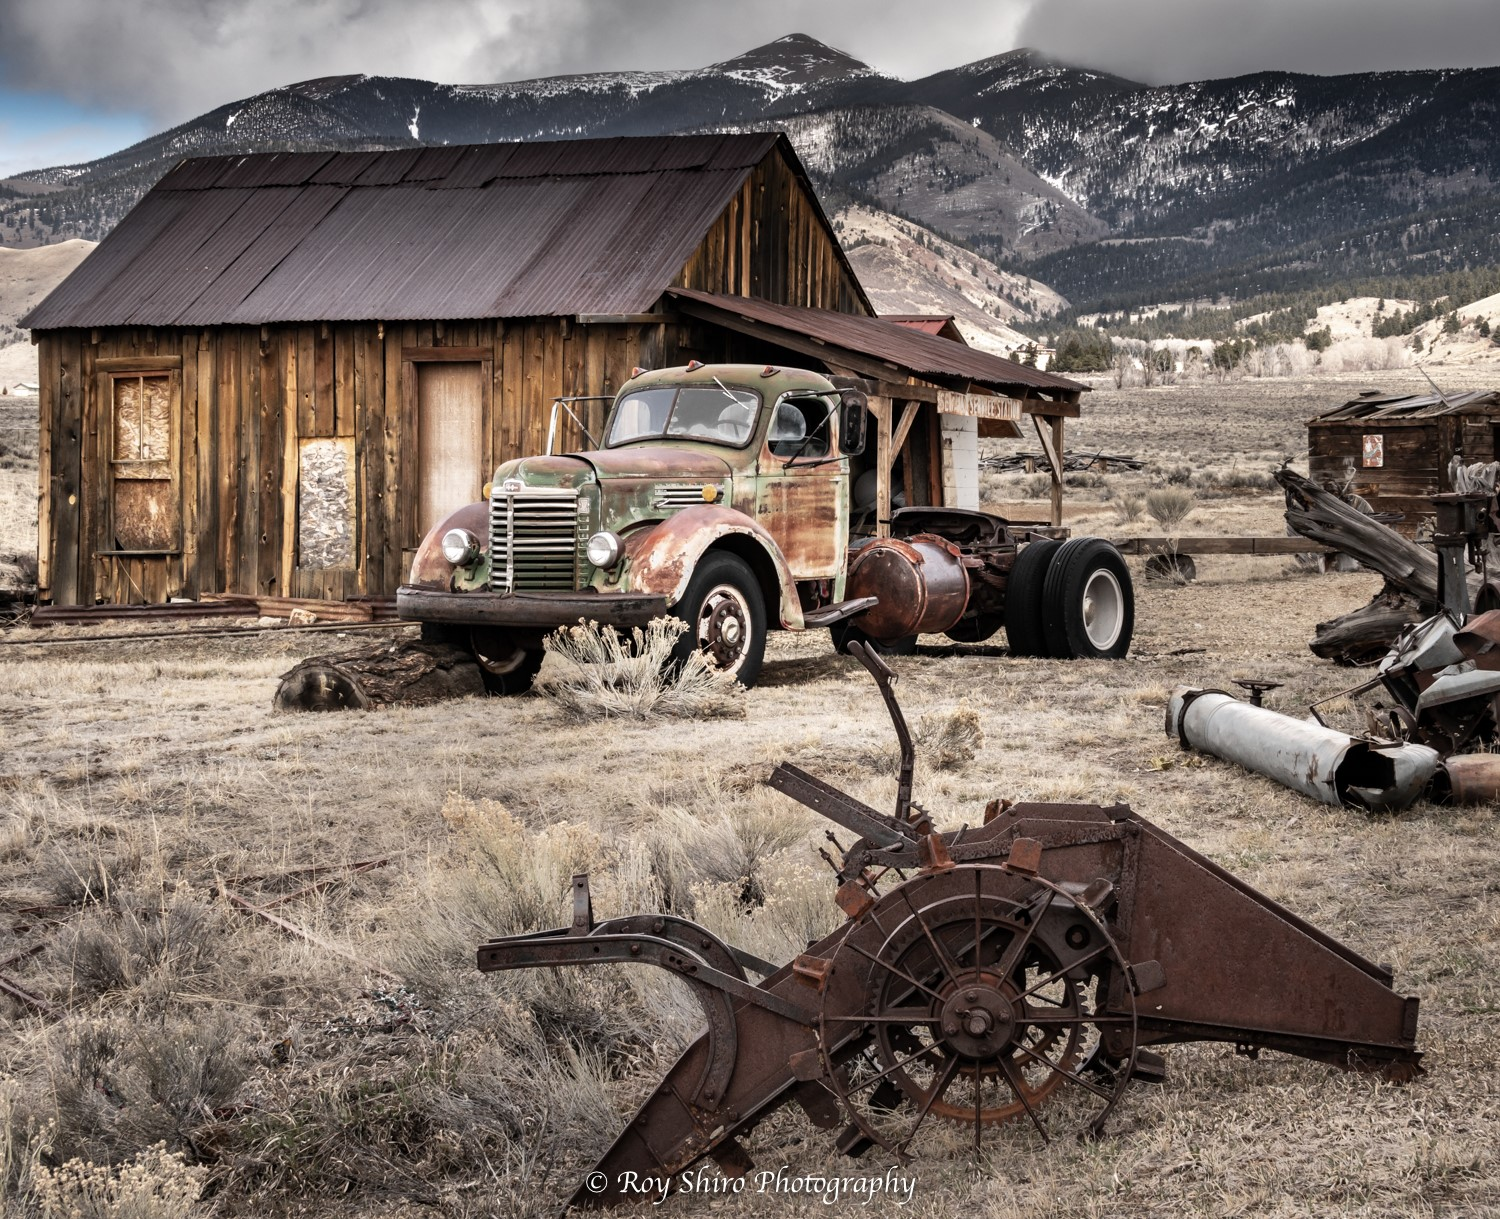 Rustic truck in front of a rustic cabin with a mountain range in the background